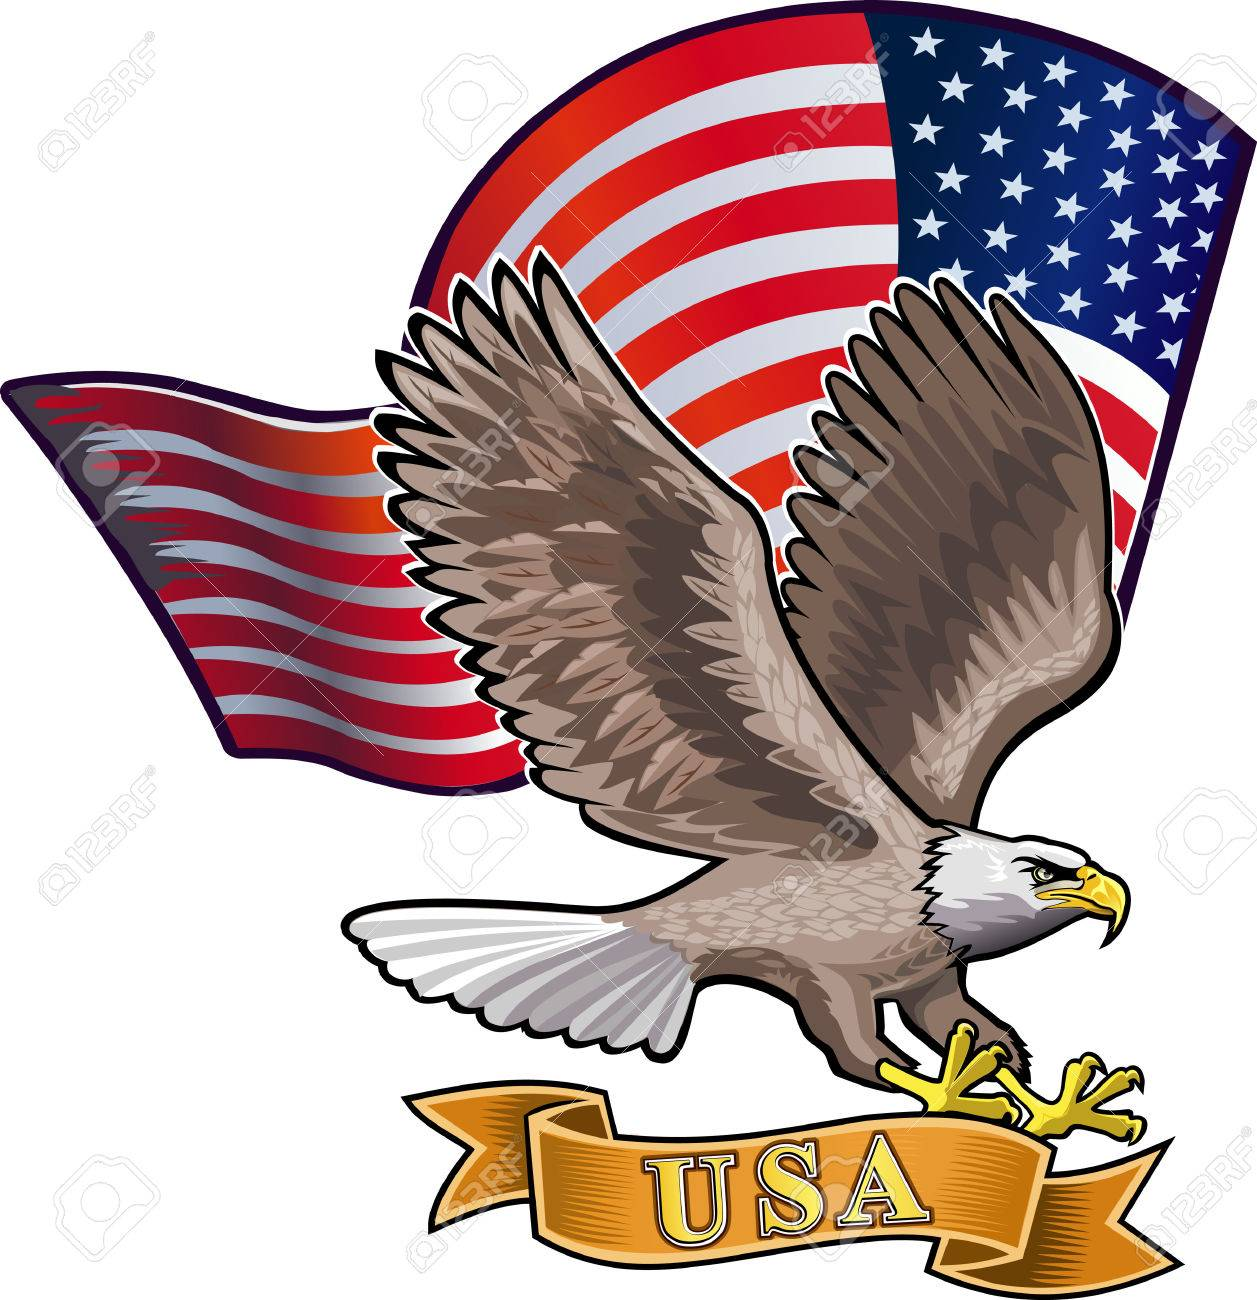 c3321858bba08 American eagle with USA flags Stock Vector - 50992321